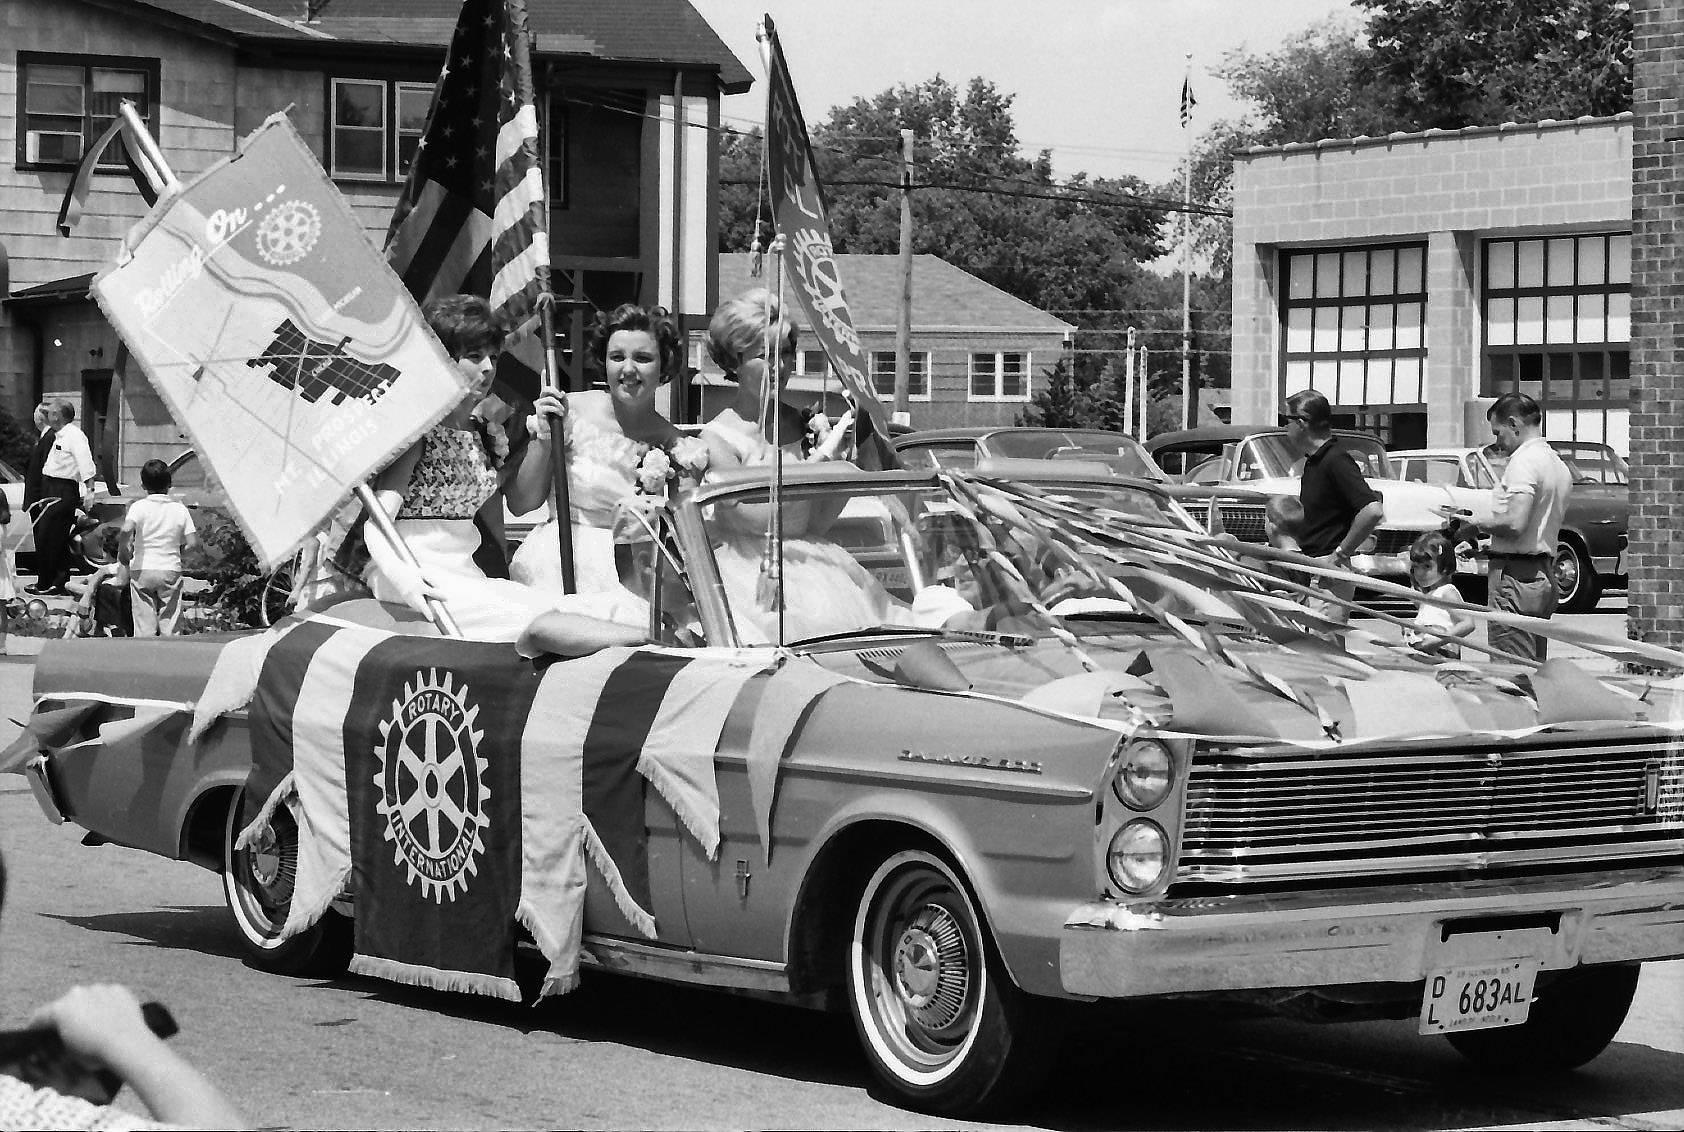 The Mount Prospect Rotary float in the Fourth of July parade in 1965.